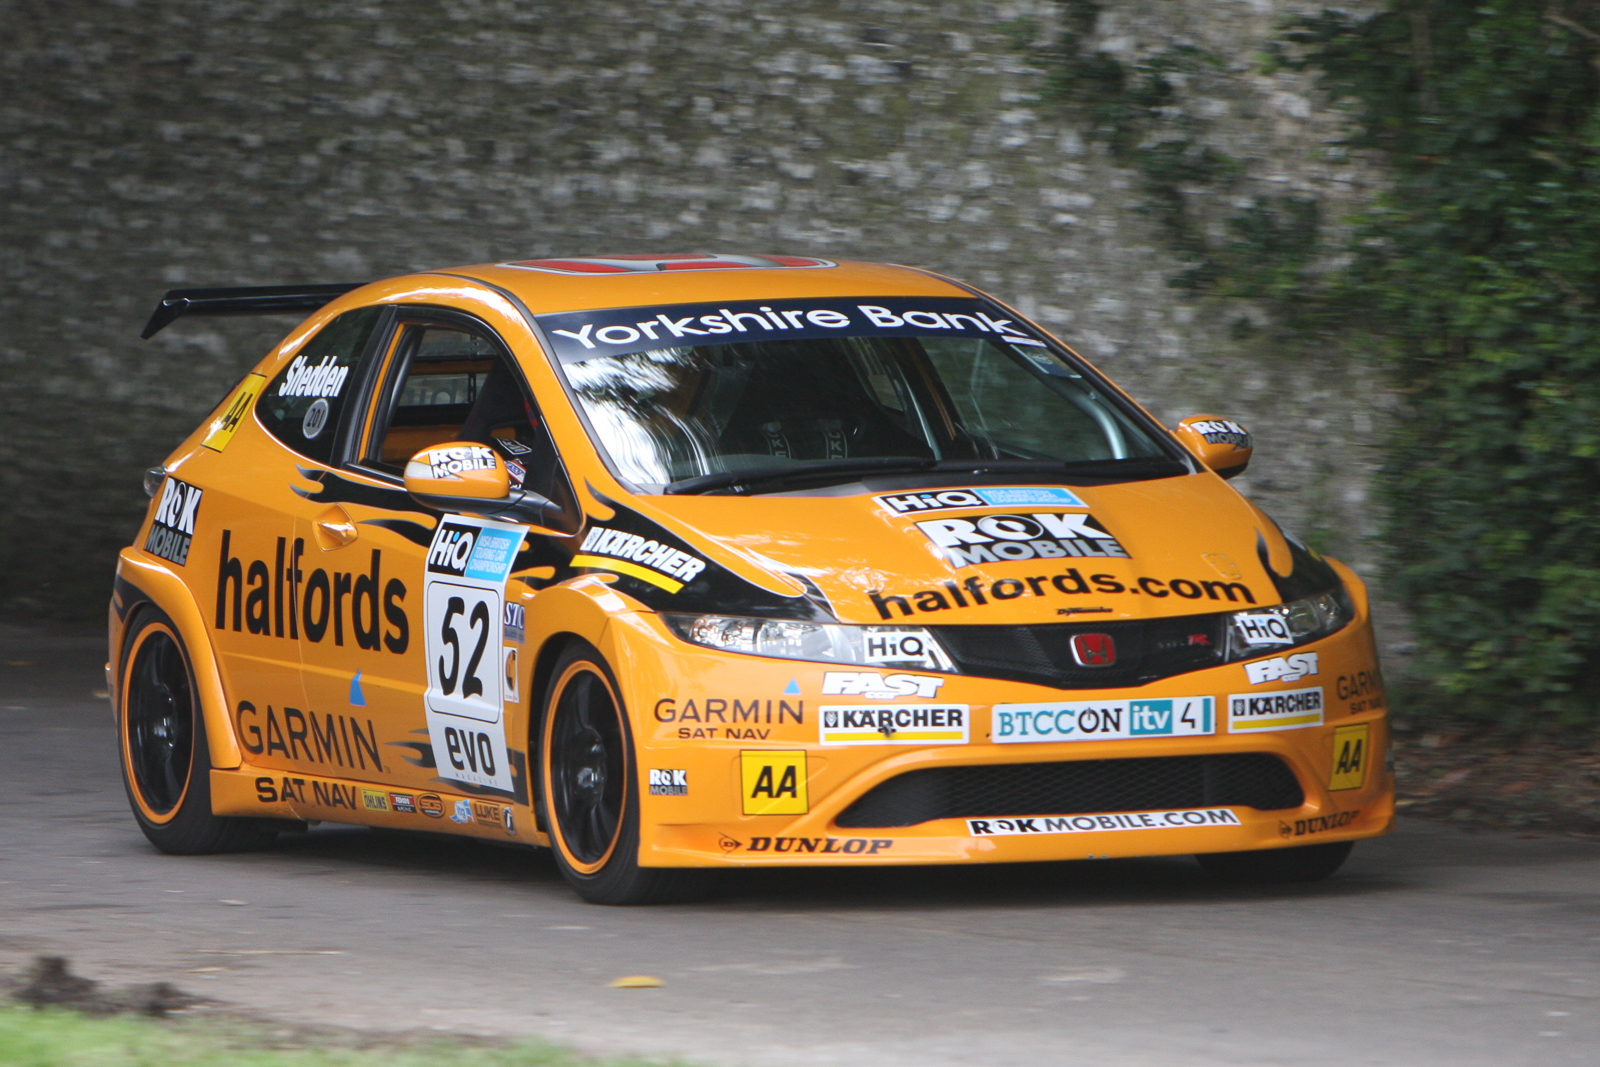 20080711 - Goodwood Festival of Speed -080711 -020